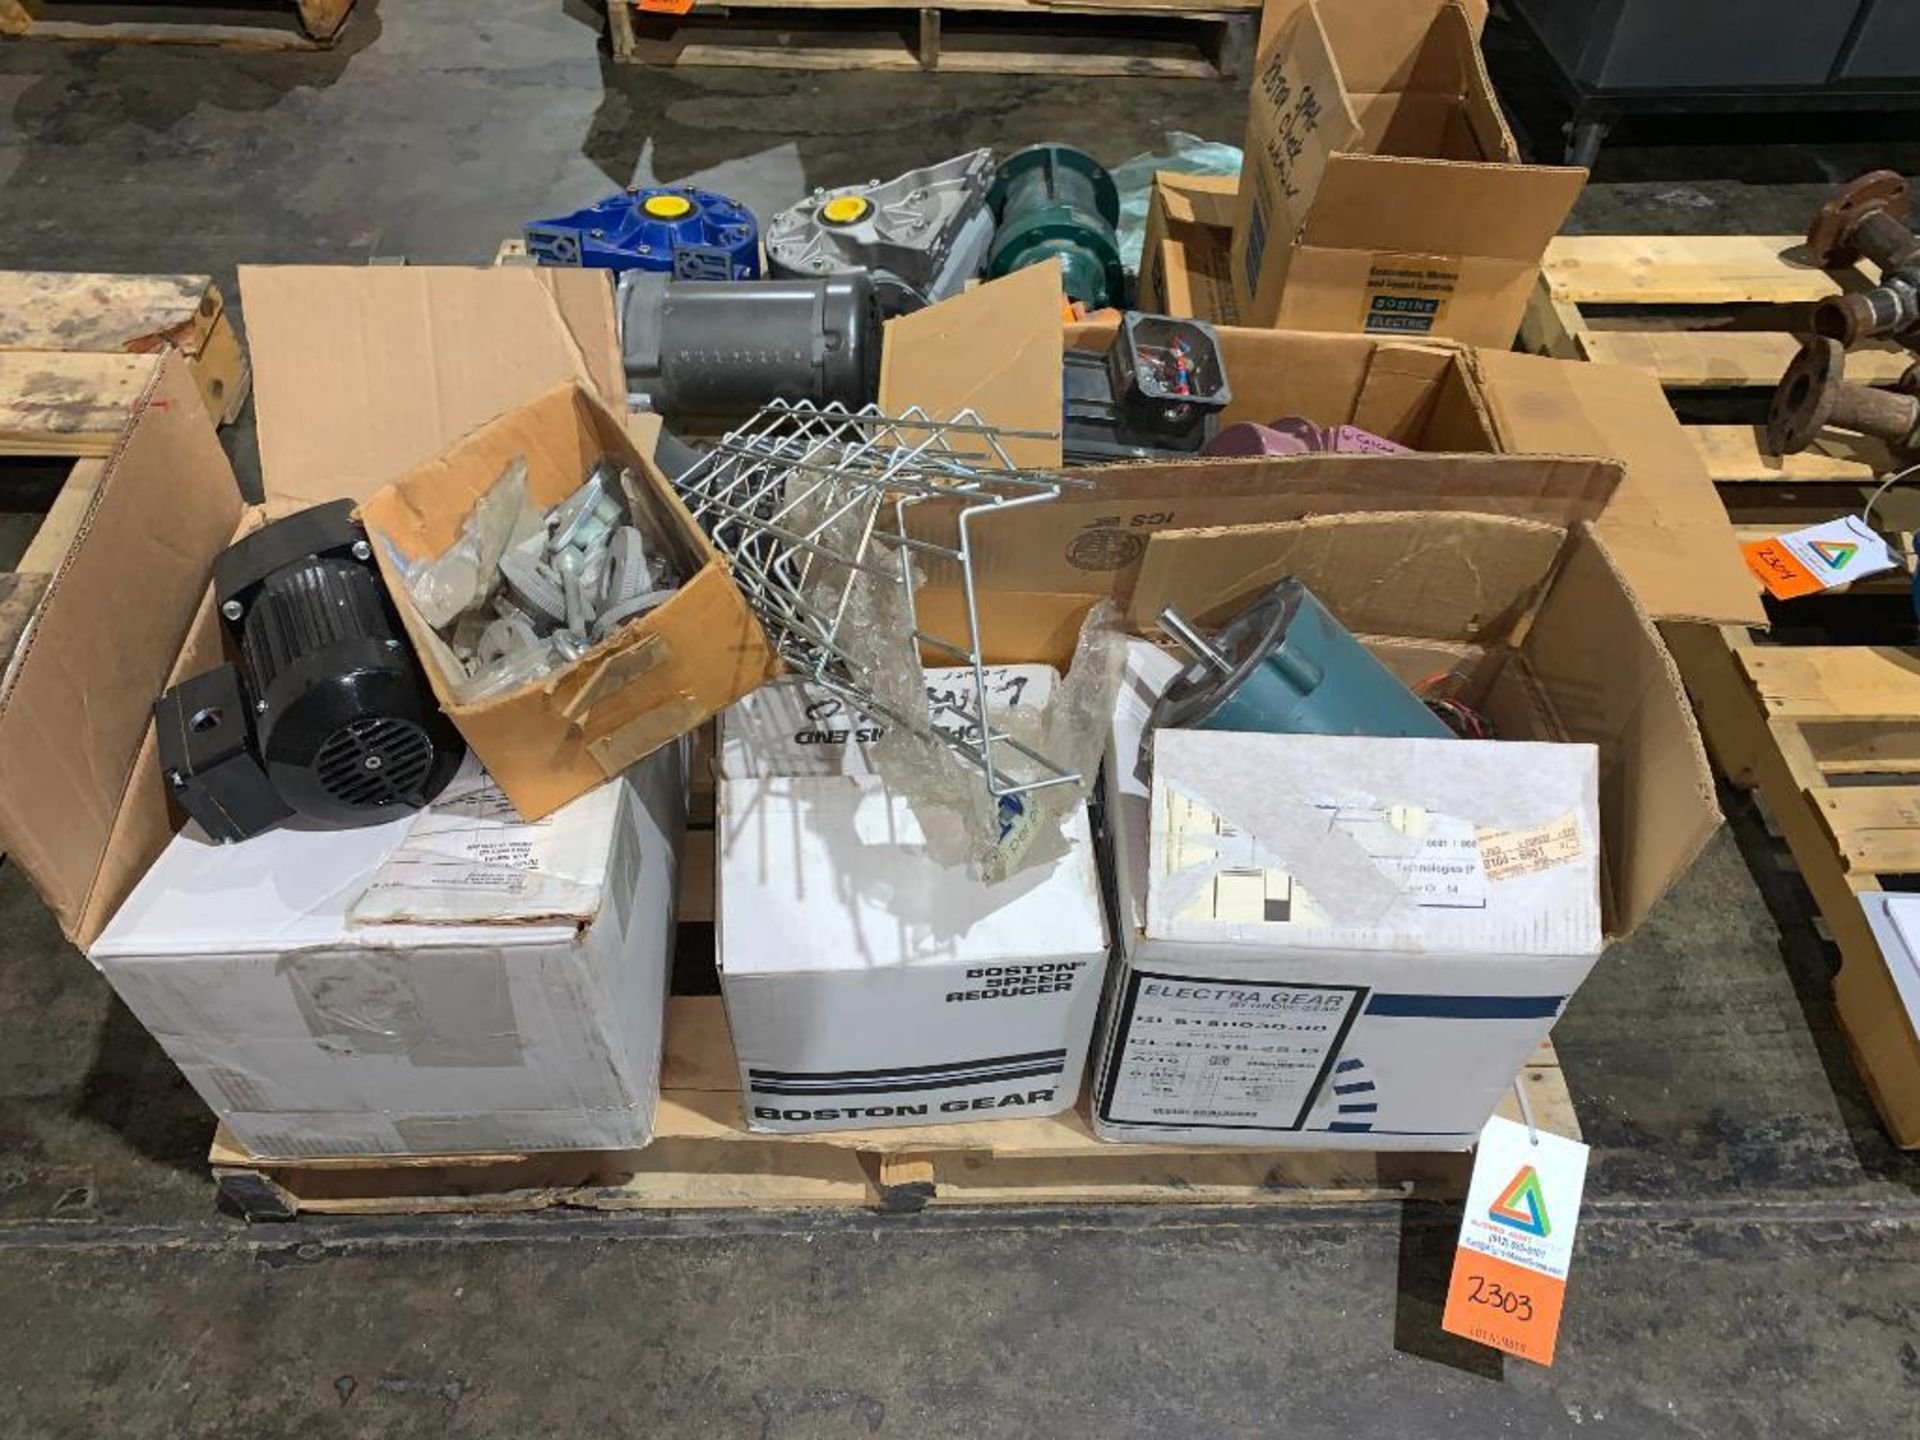 pallet of used motors and drives